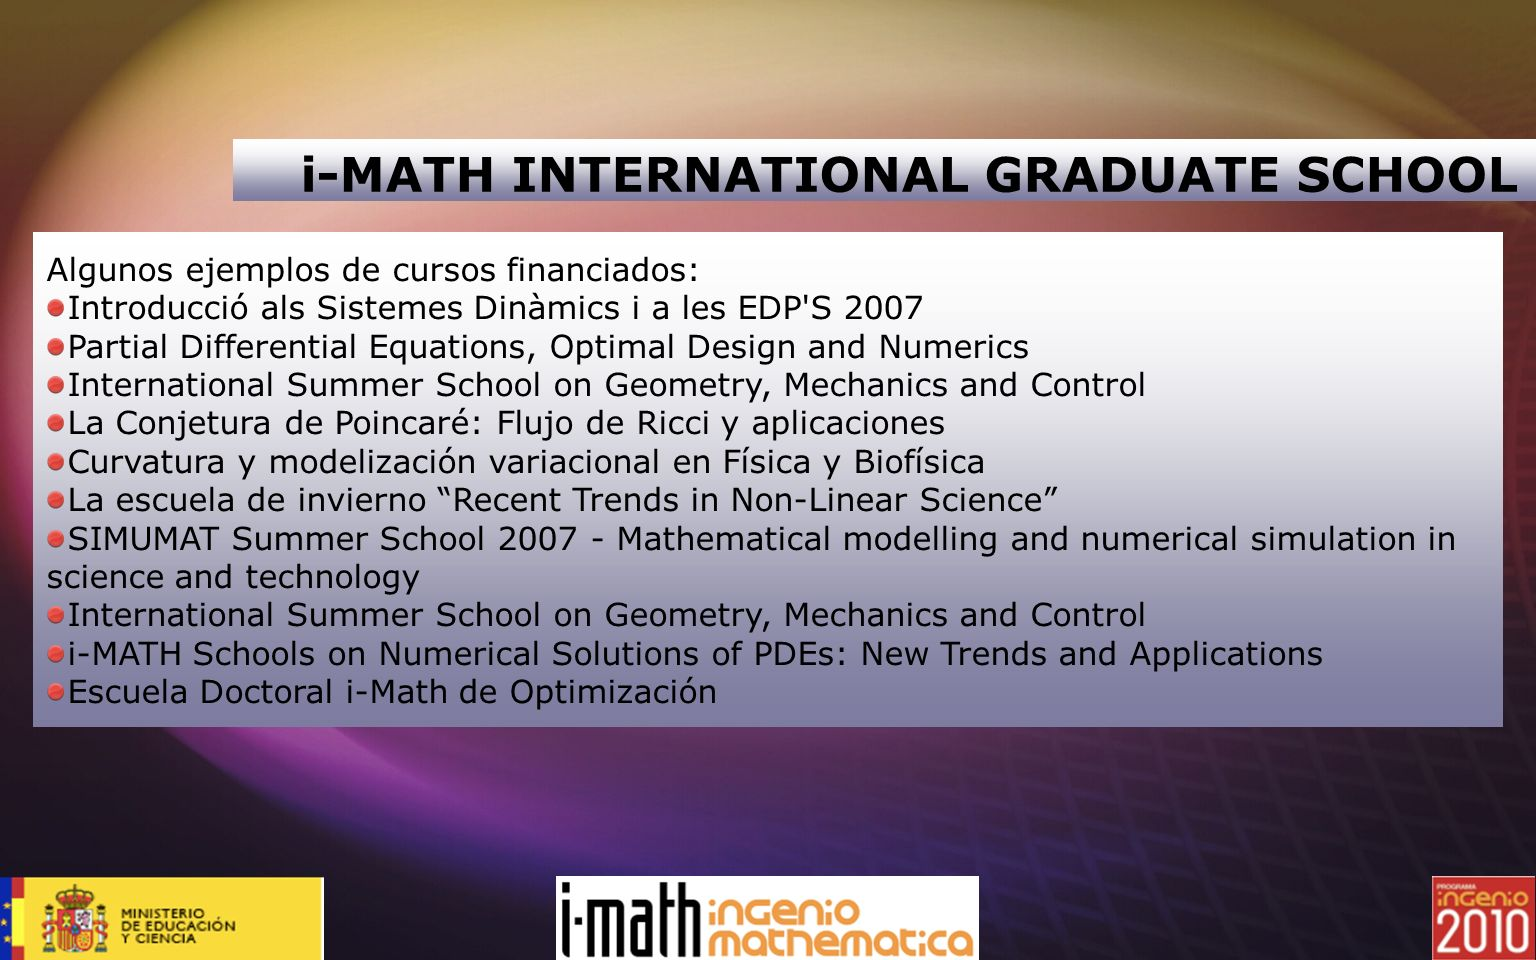 i-MATH INTERNATIONAL GRADUATE SCHOOL